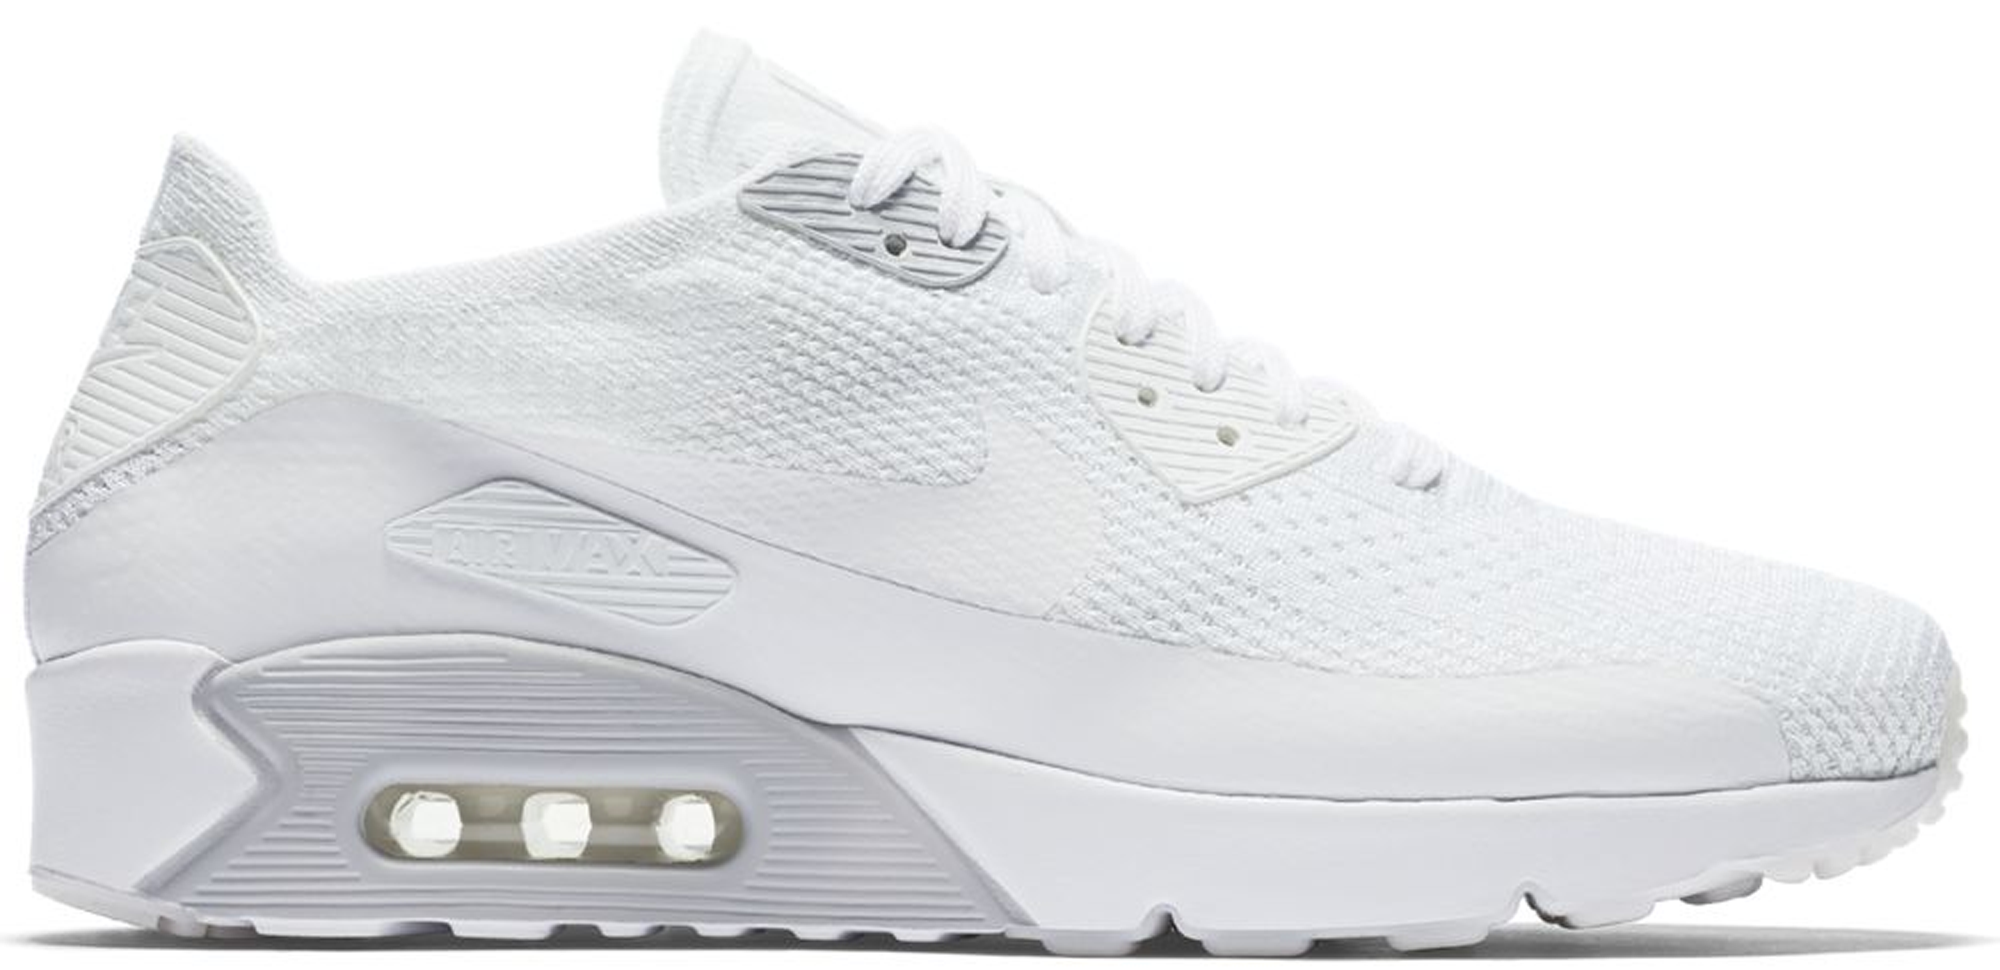 Air Max 90 Ultra 2.0 Flyknit White